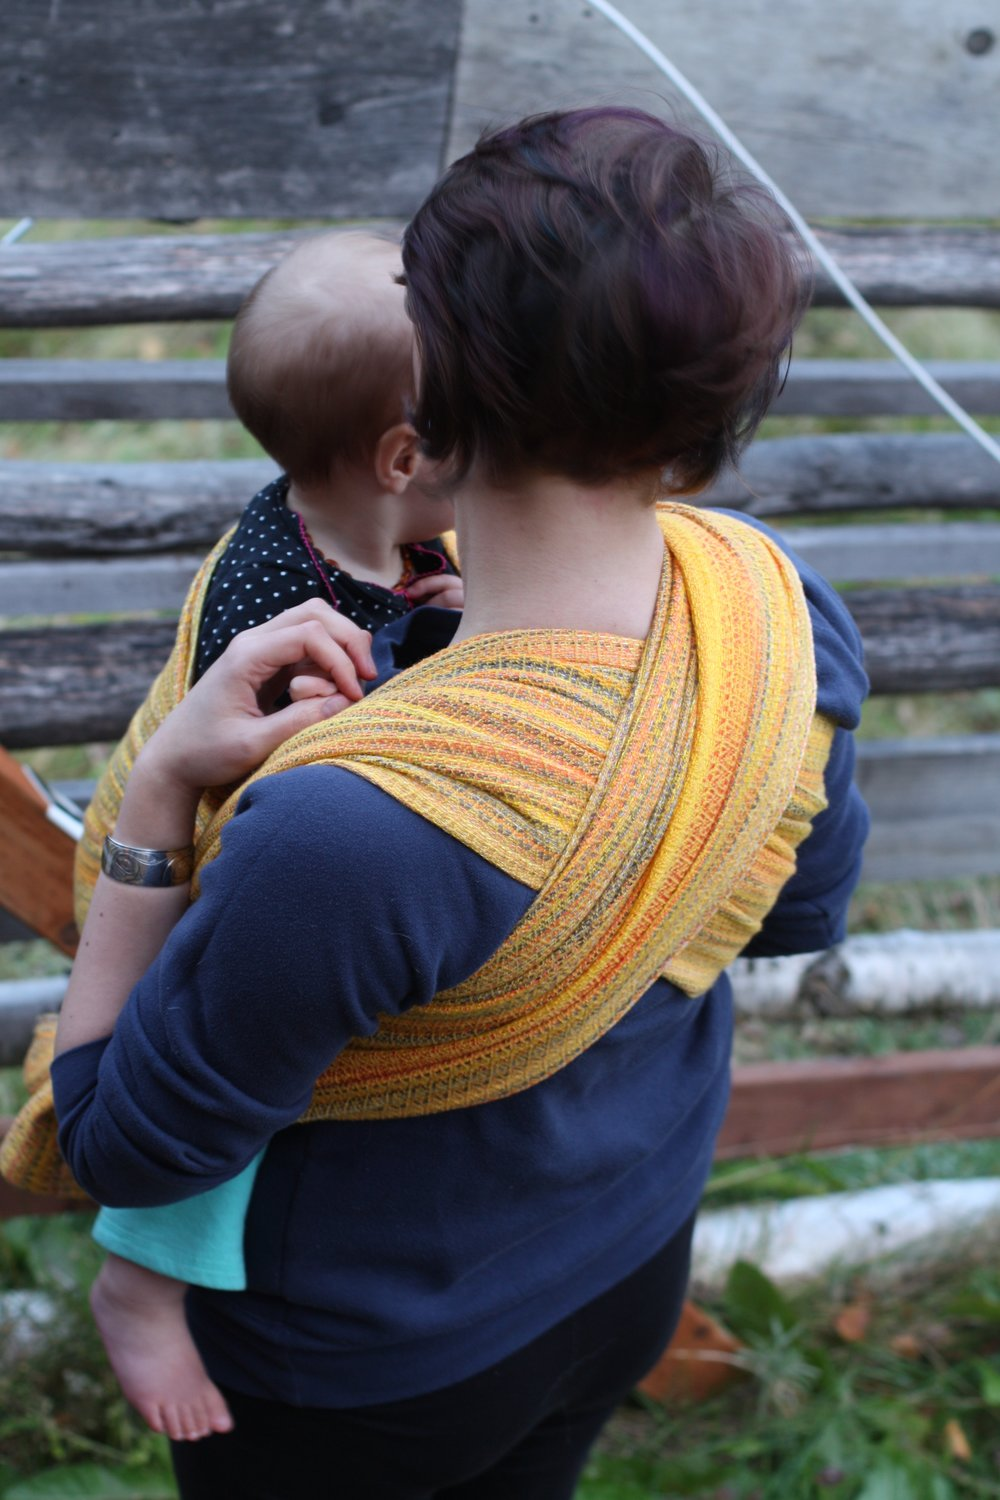 Snowbirding, an autumnal sunset handwoven baby wrap with yellow wool weft | 14 Mile Farm Handweaving and Homesteading